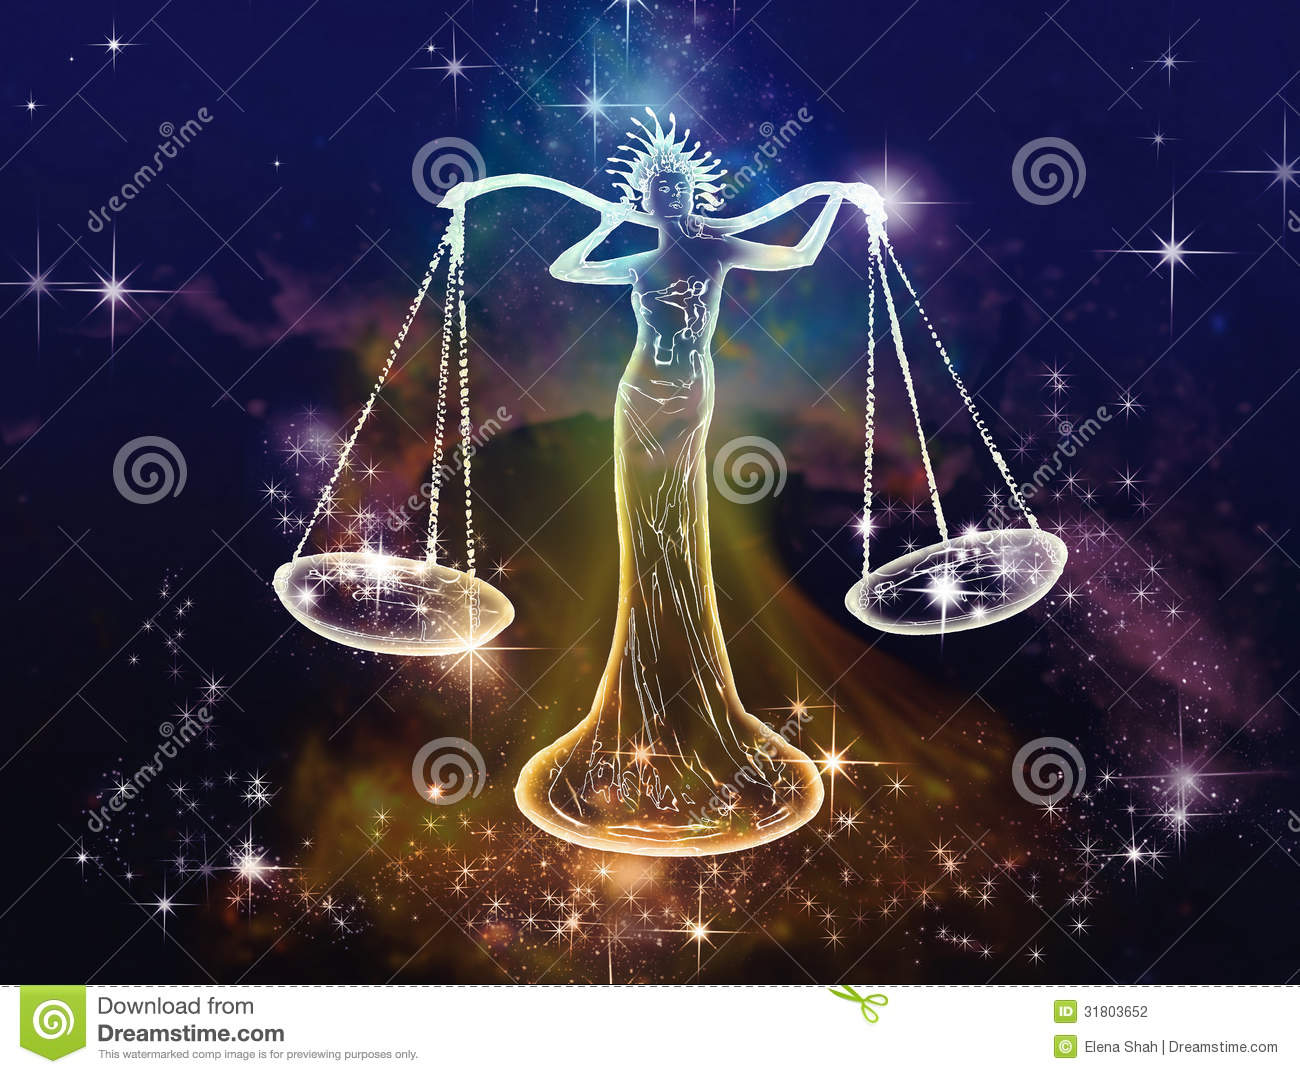 Libra Dinero Libra Scales Stock Illustration Illustration Of Quaint